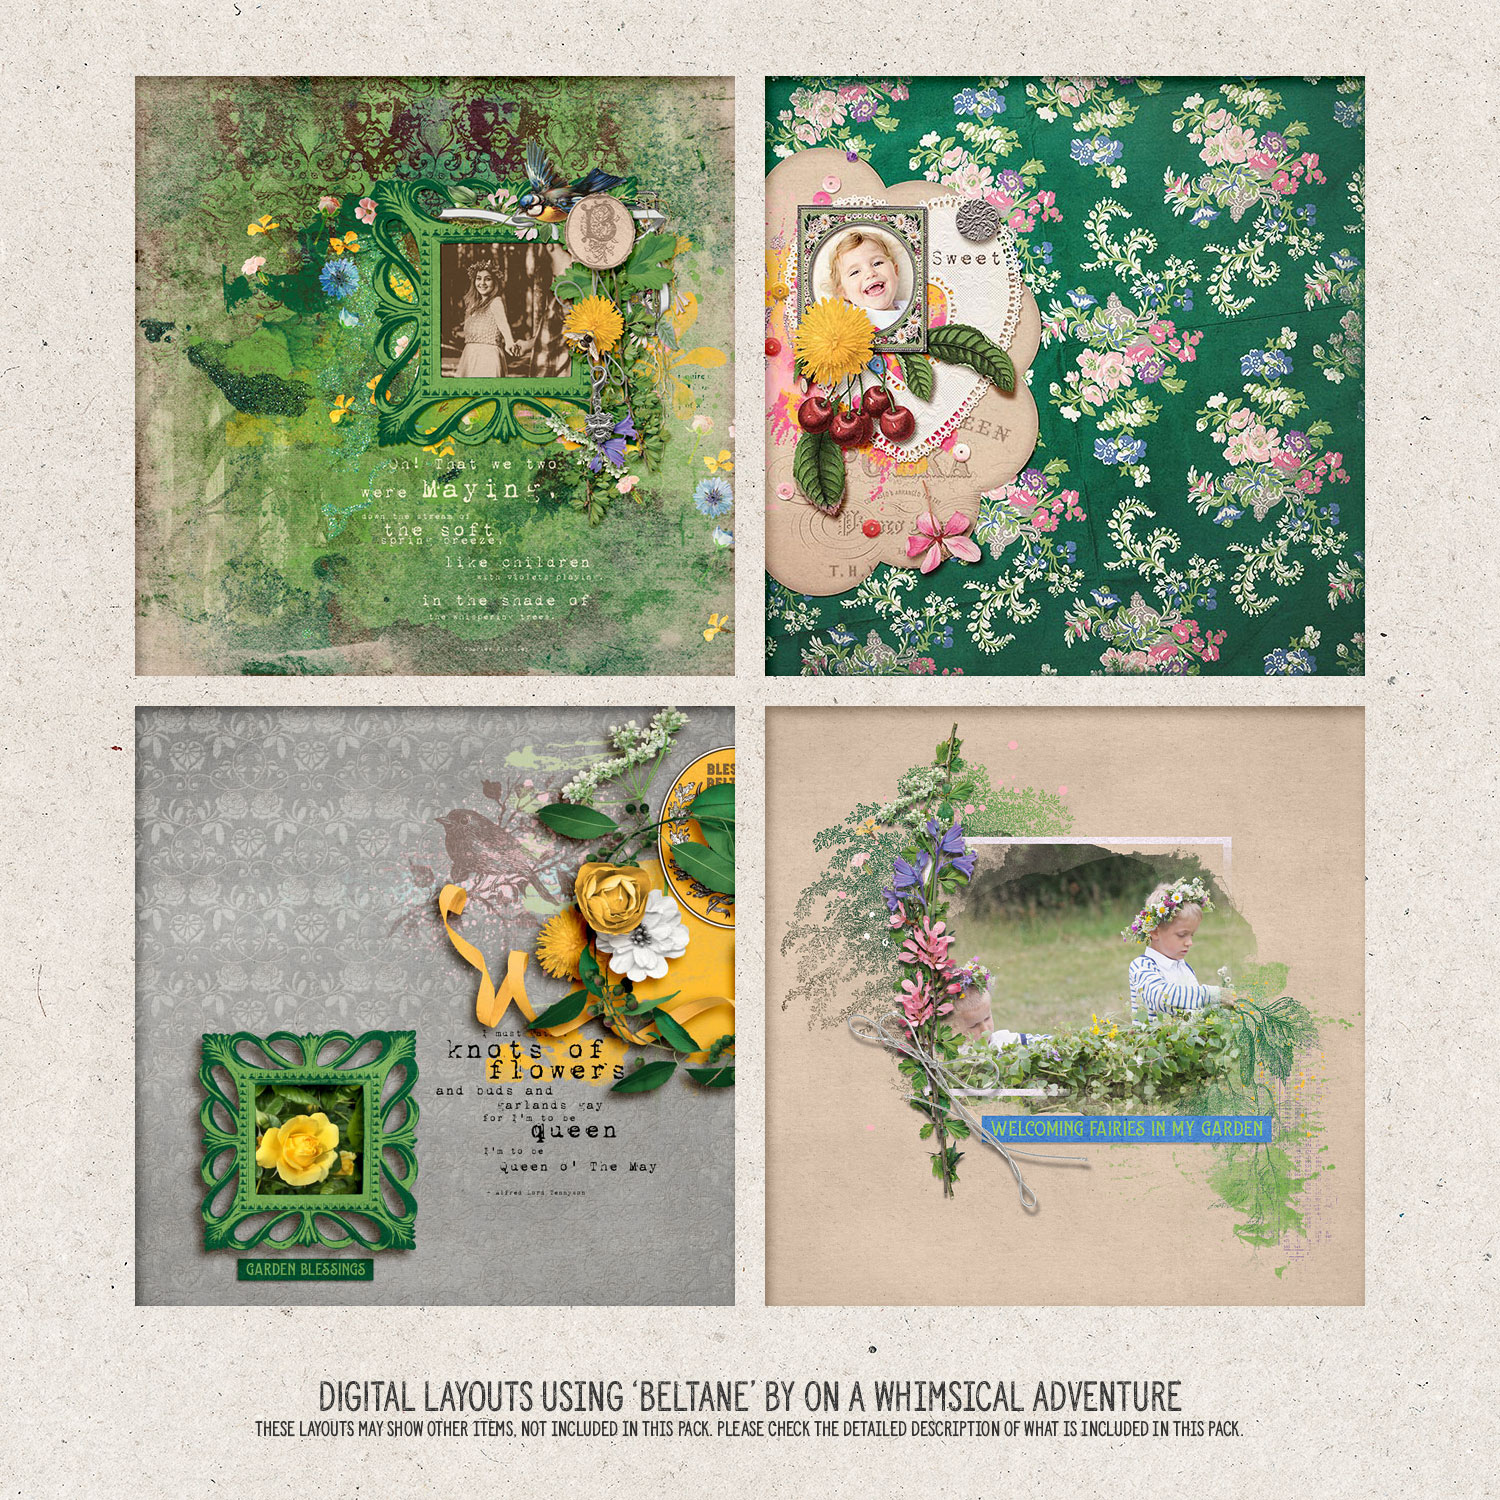 Digital layouts using Wheel Of The Year Beltane Bundle by On A Whimsical Adventure